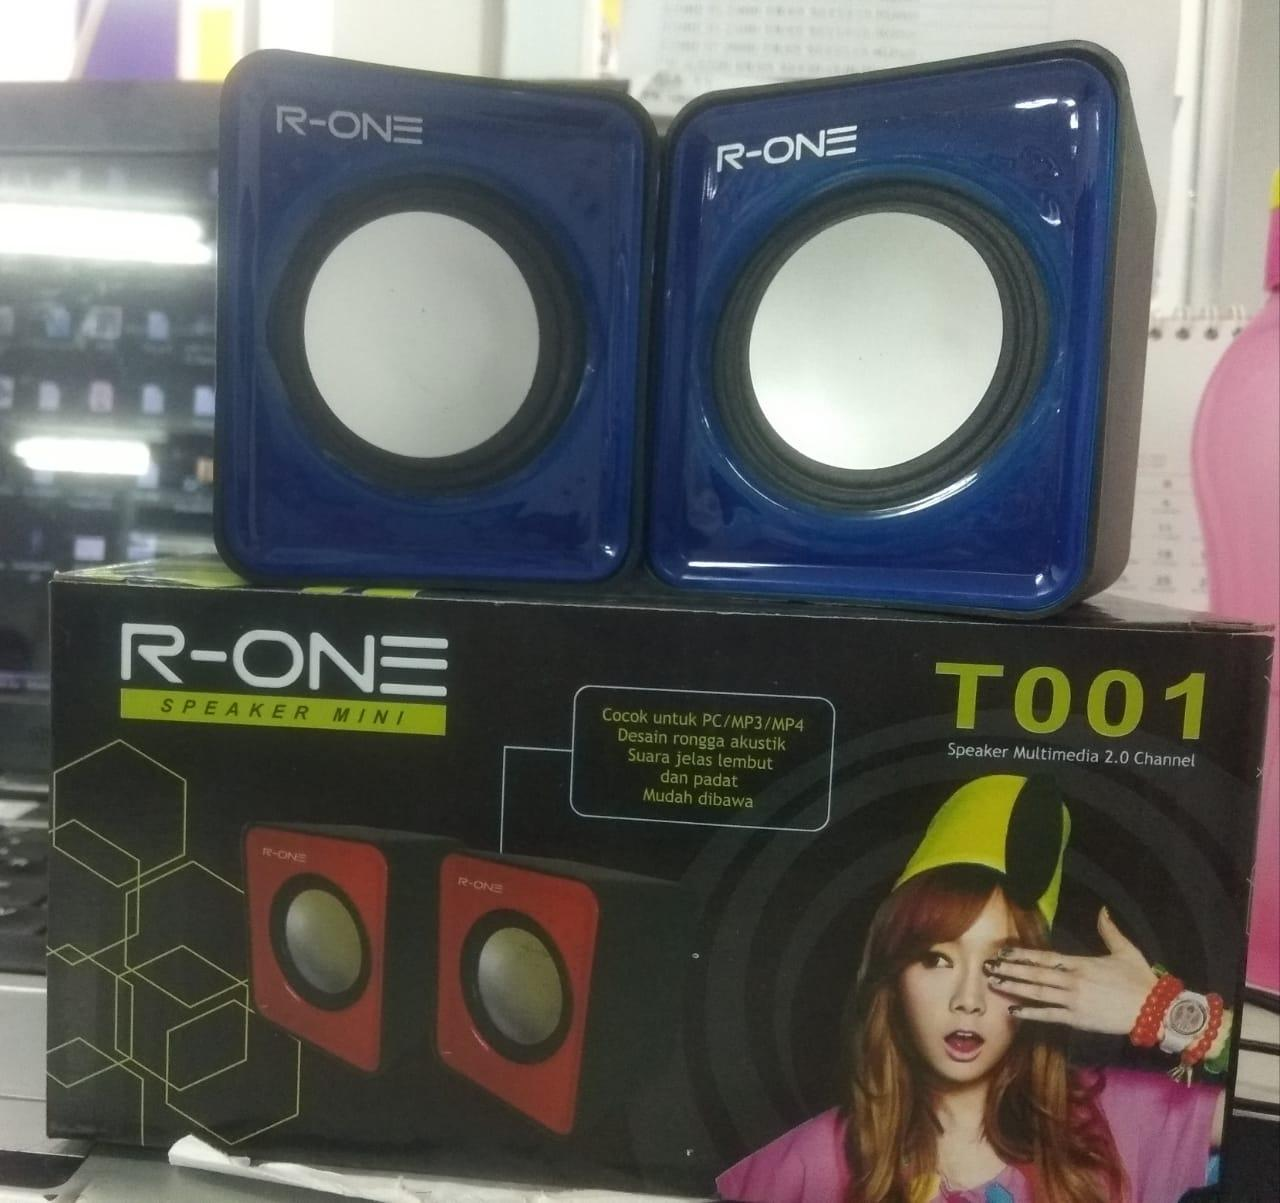 https://www.lazada.co.id/products/speaker-usb-r-one-t001-i789740073-s1111718504.html